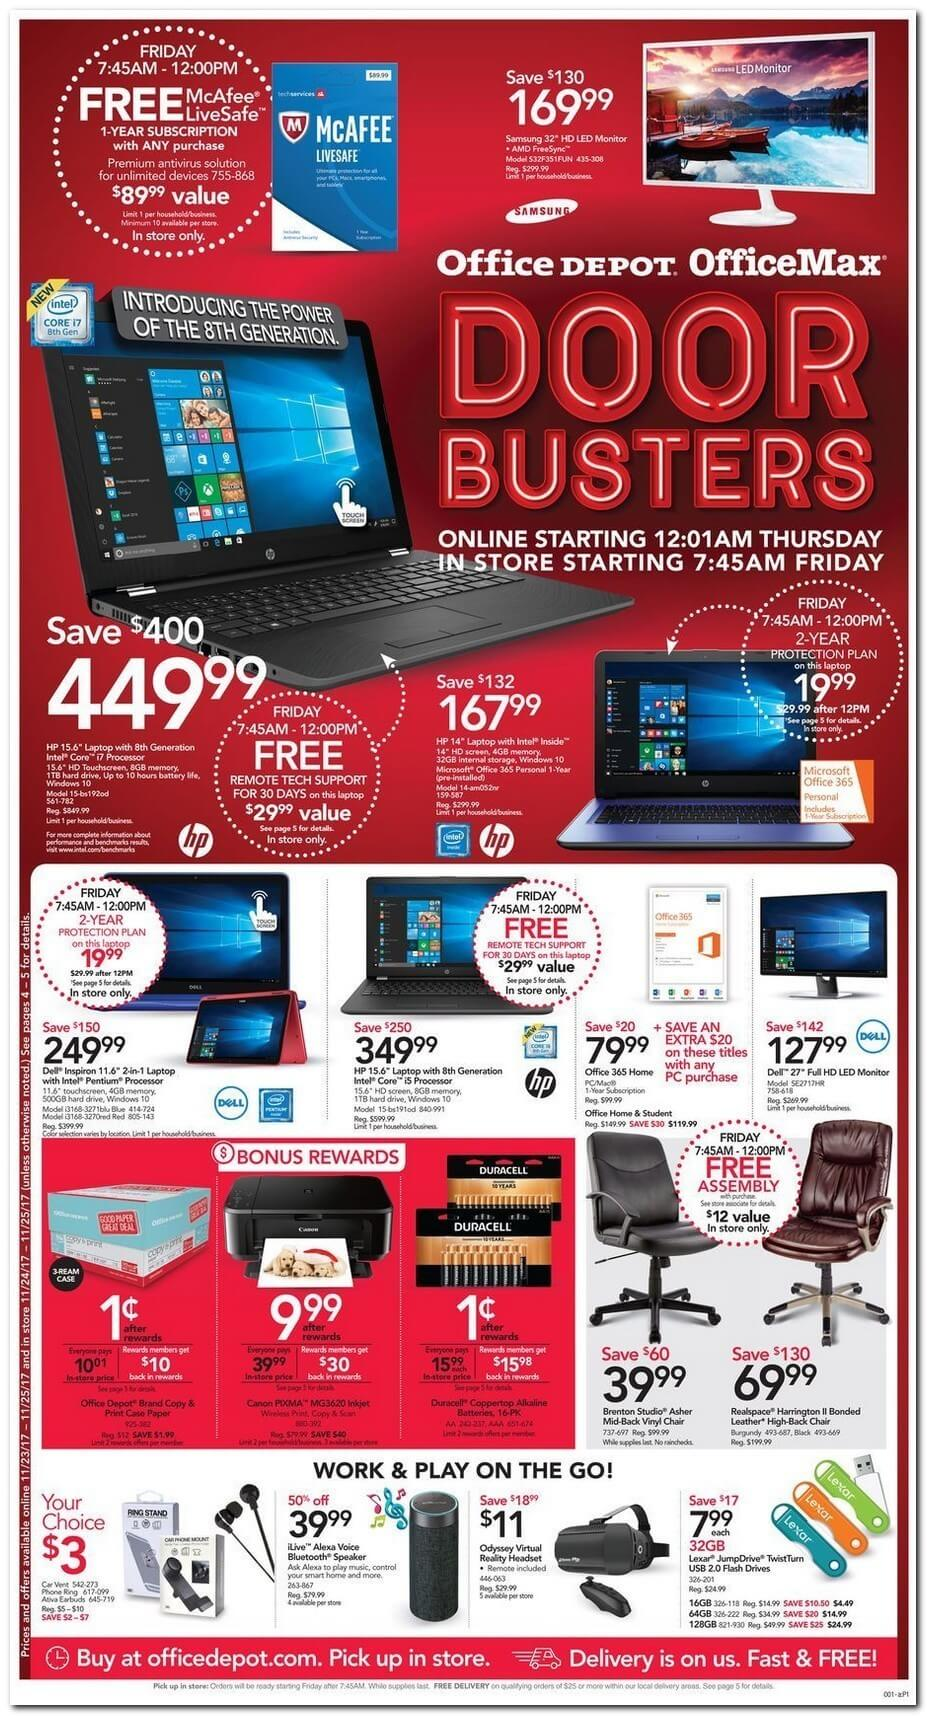 Office Depot - Office Max 2017 Black Friday Ad Page 1